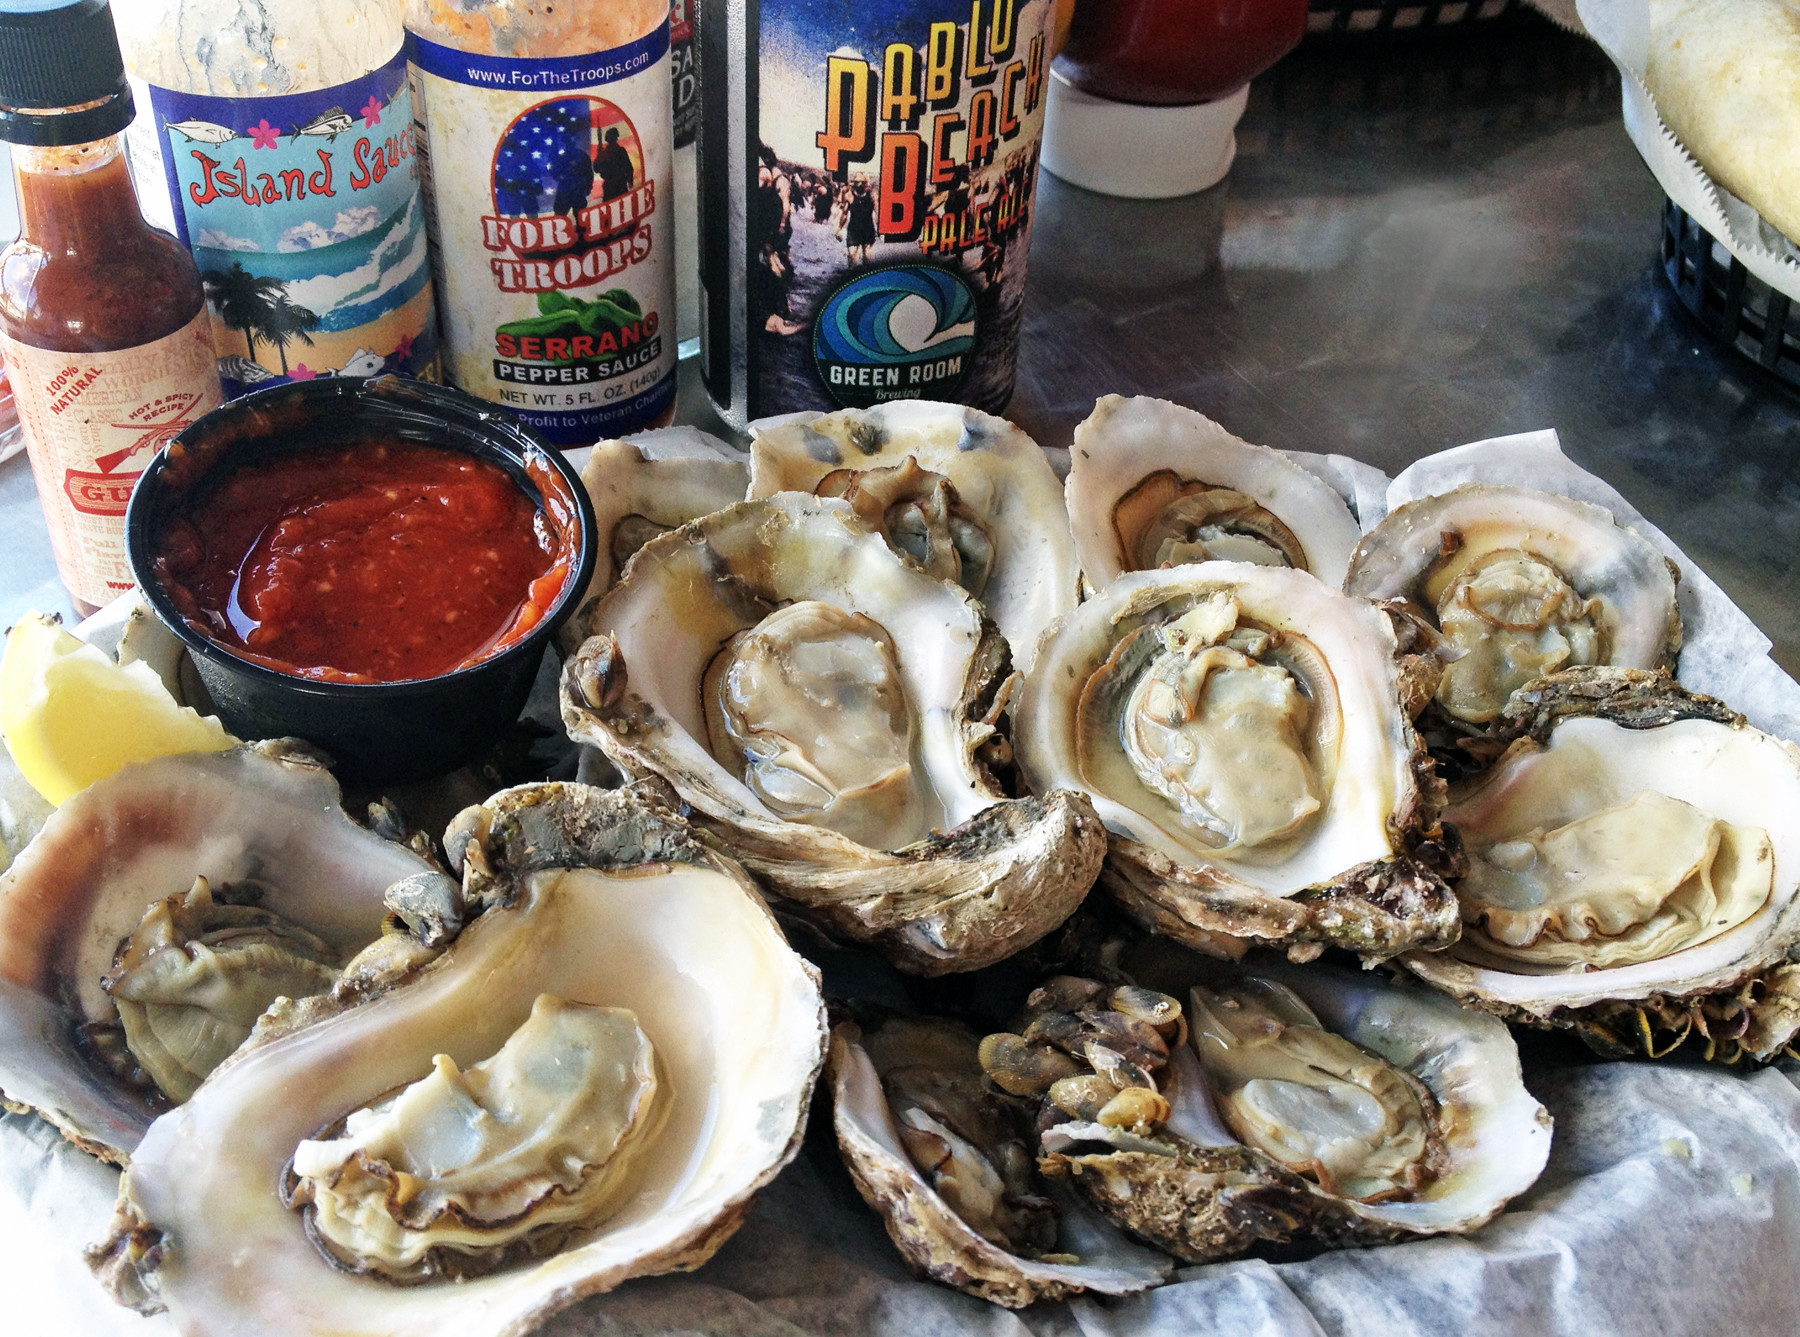 At $5.99 a dozen, steamed oysters with cocktail sauce and melted butter were an affordable appetizer.